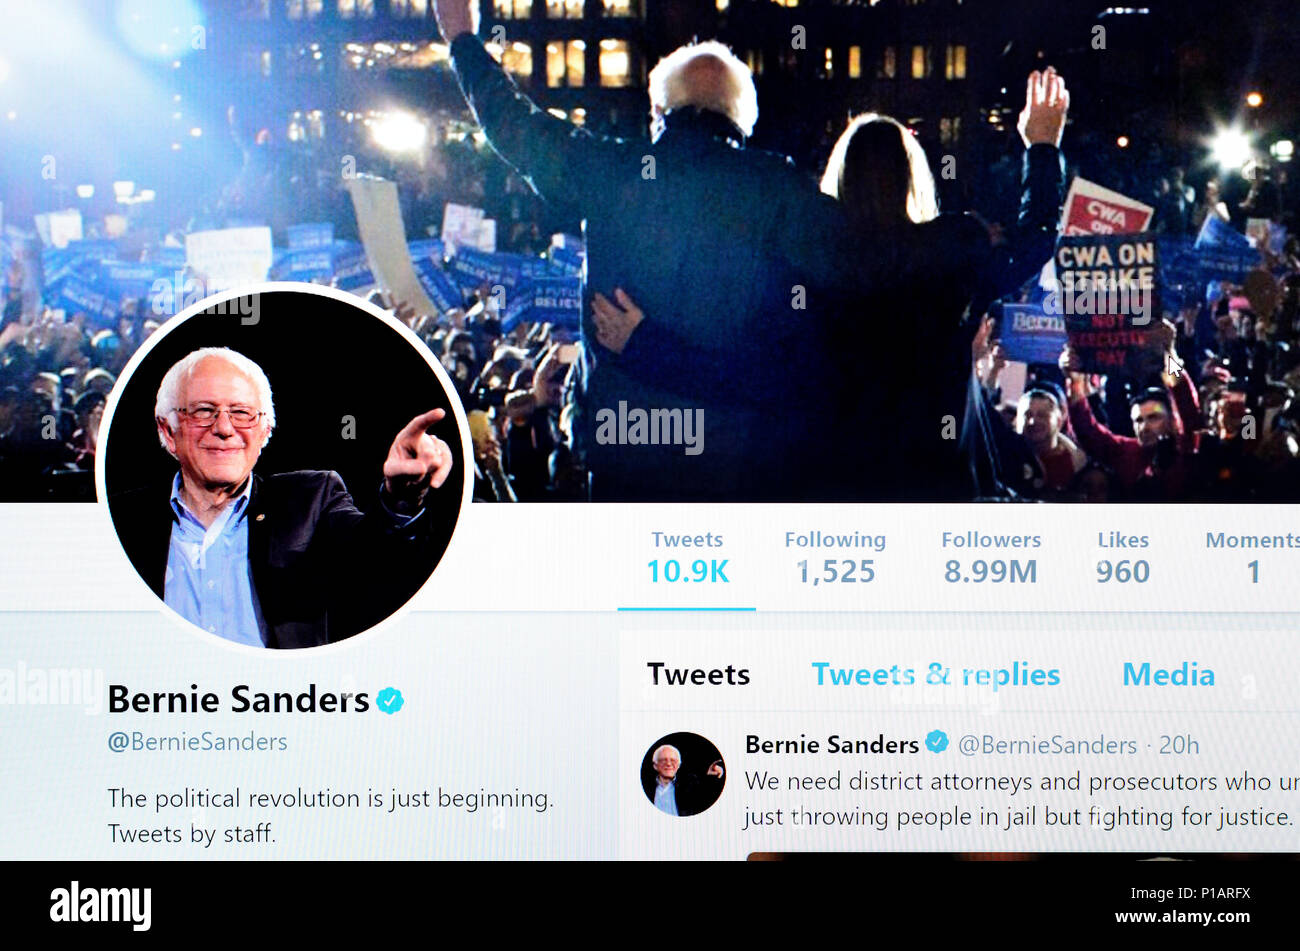 Bernie Sanders compte Twitter home page (Juin 2018) Photo Stock